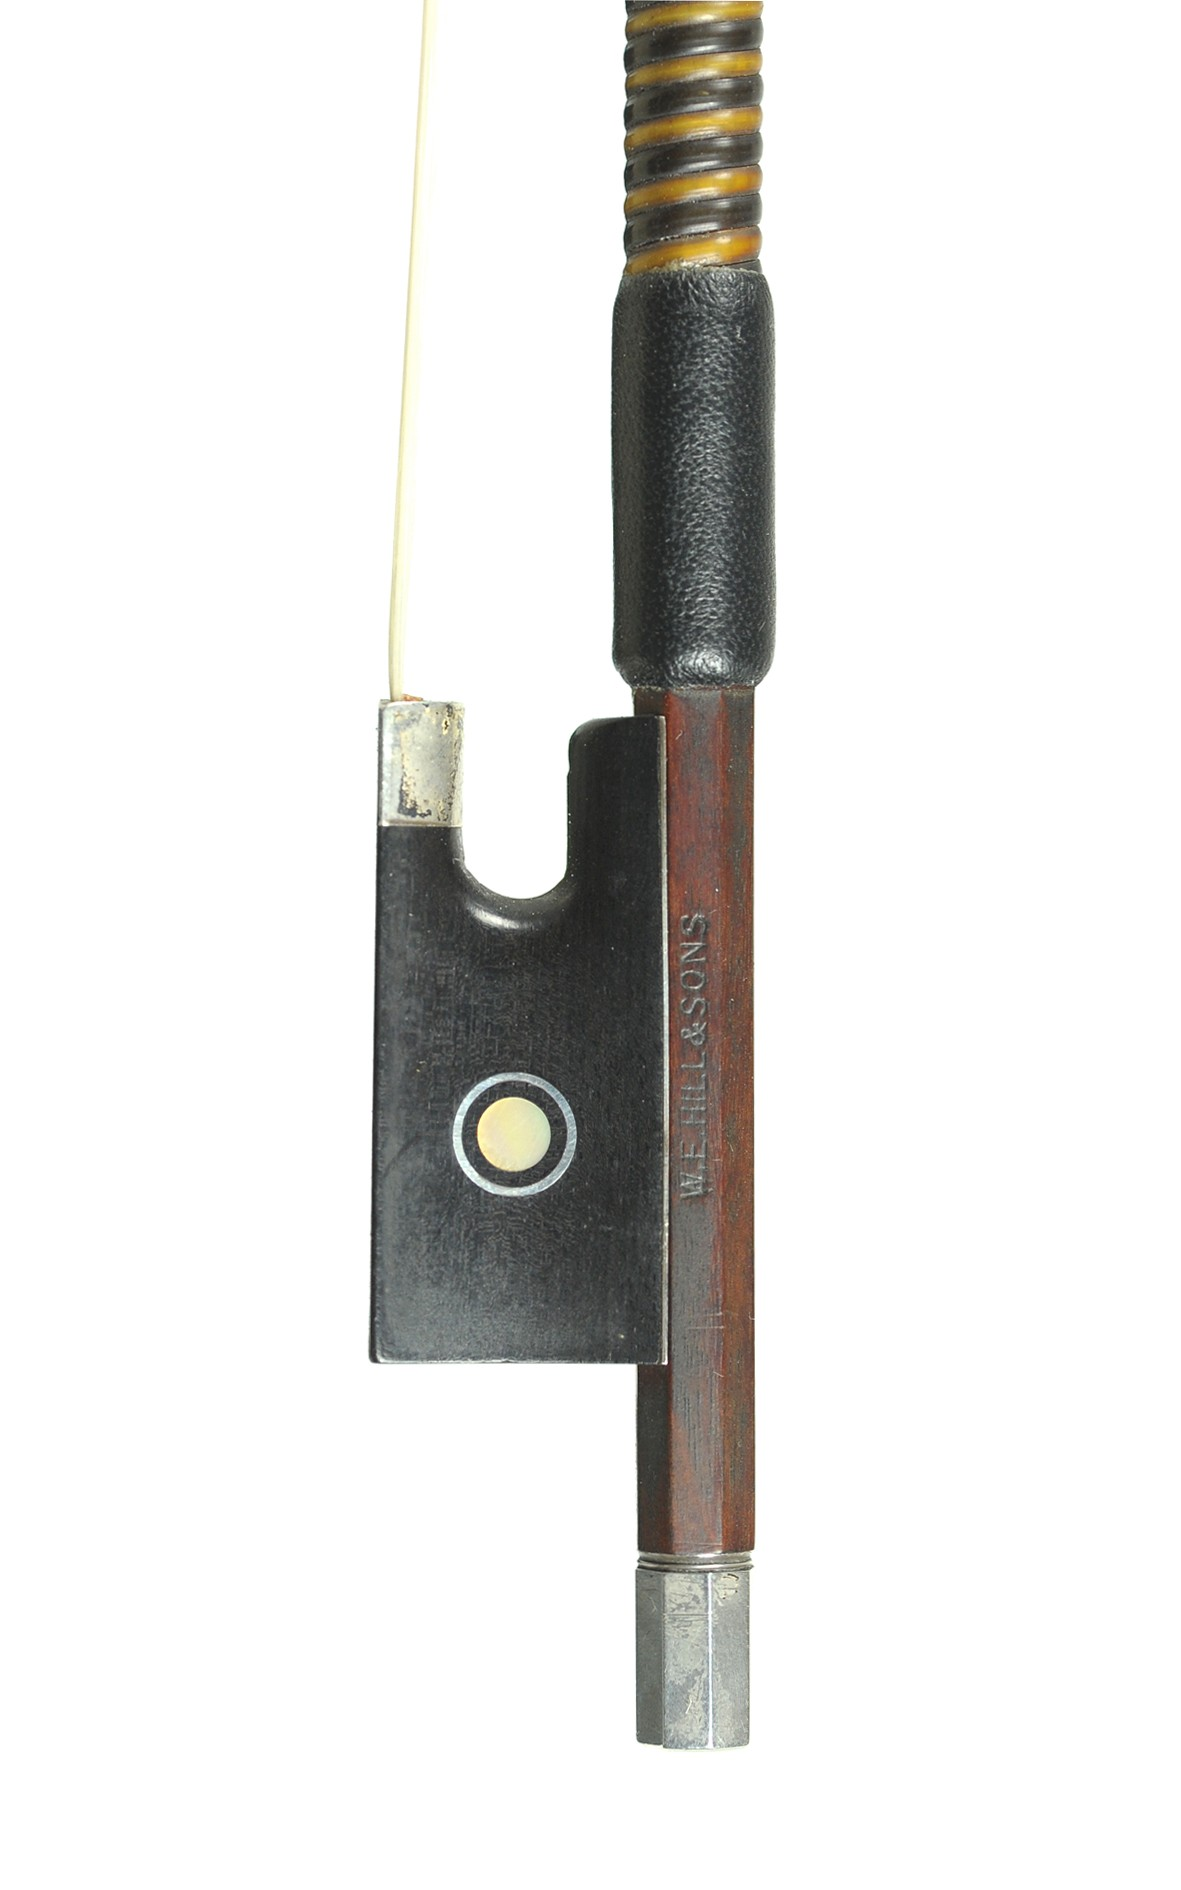 WE Hill & Sons violin bow